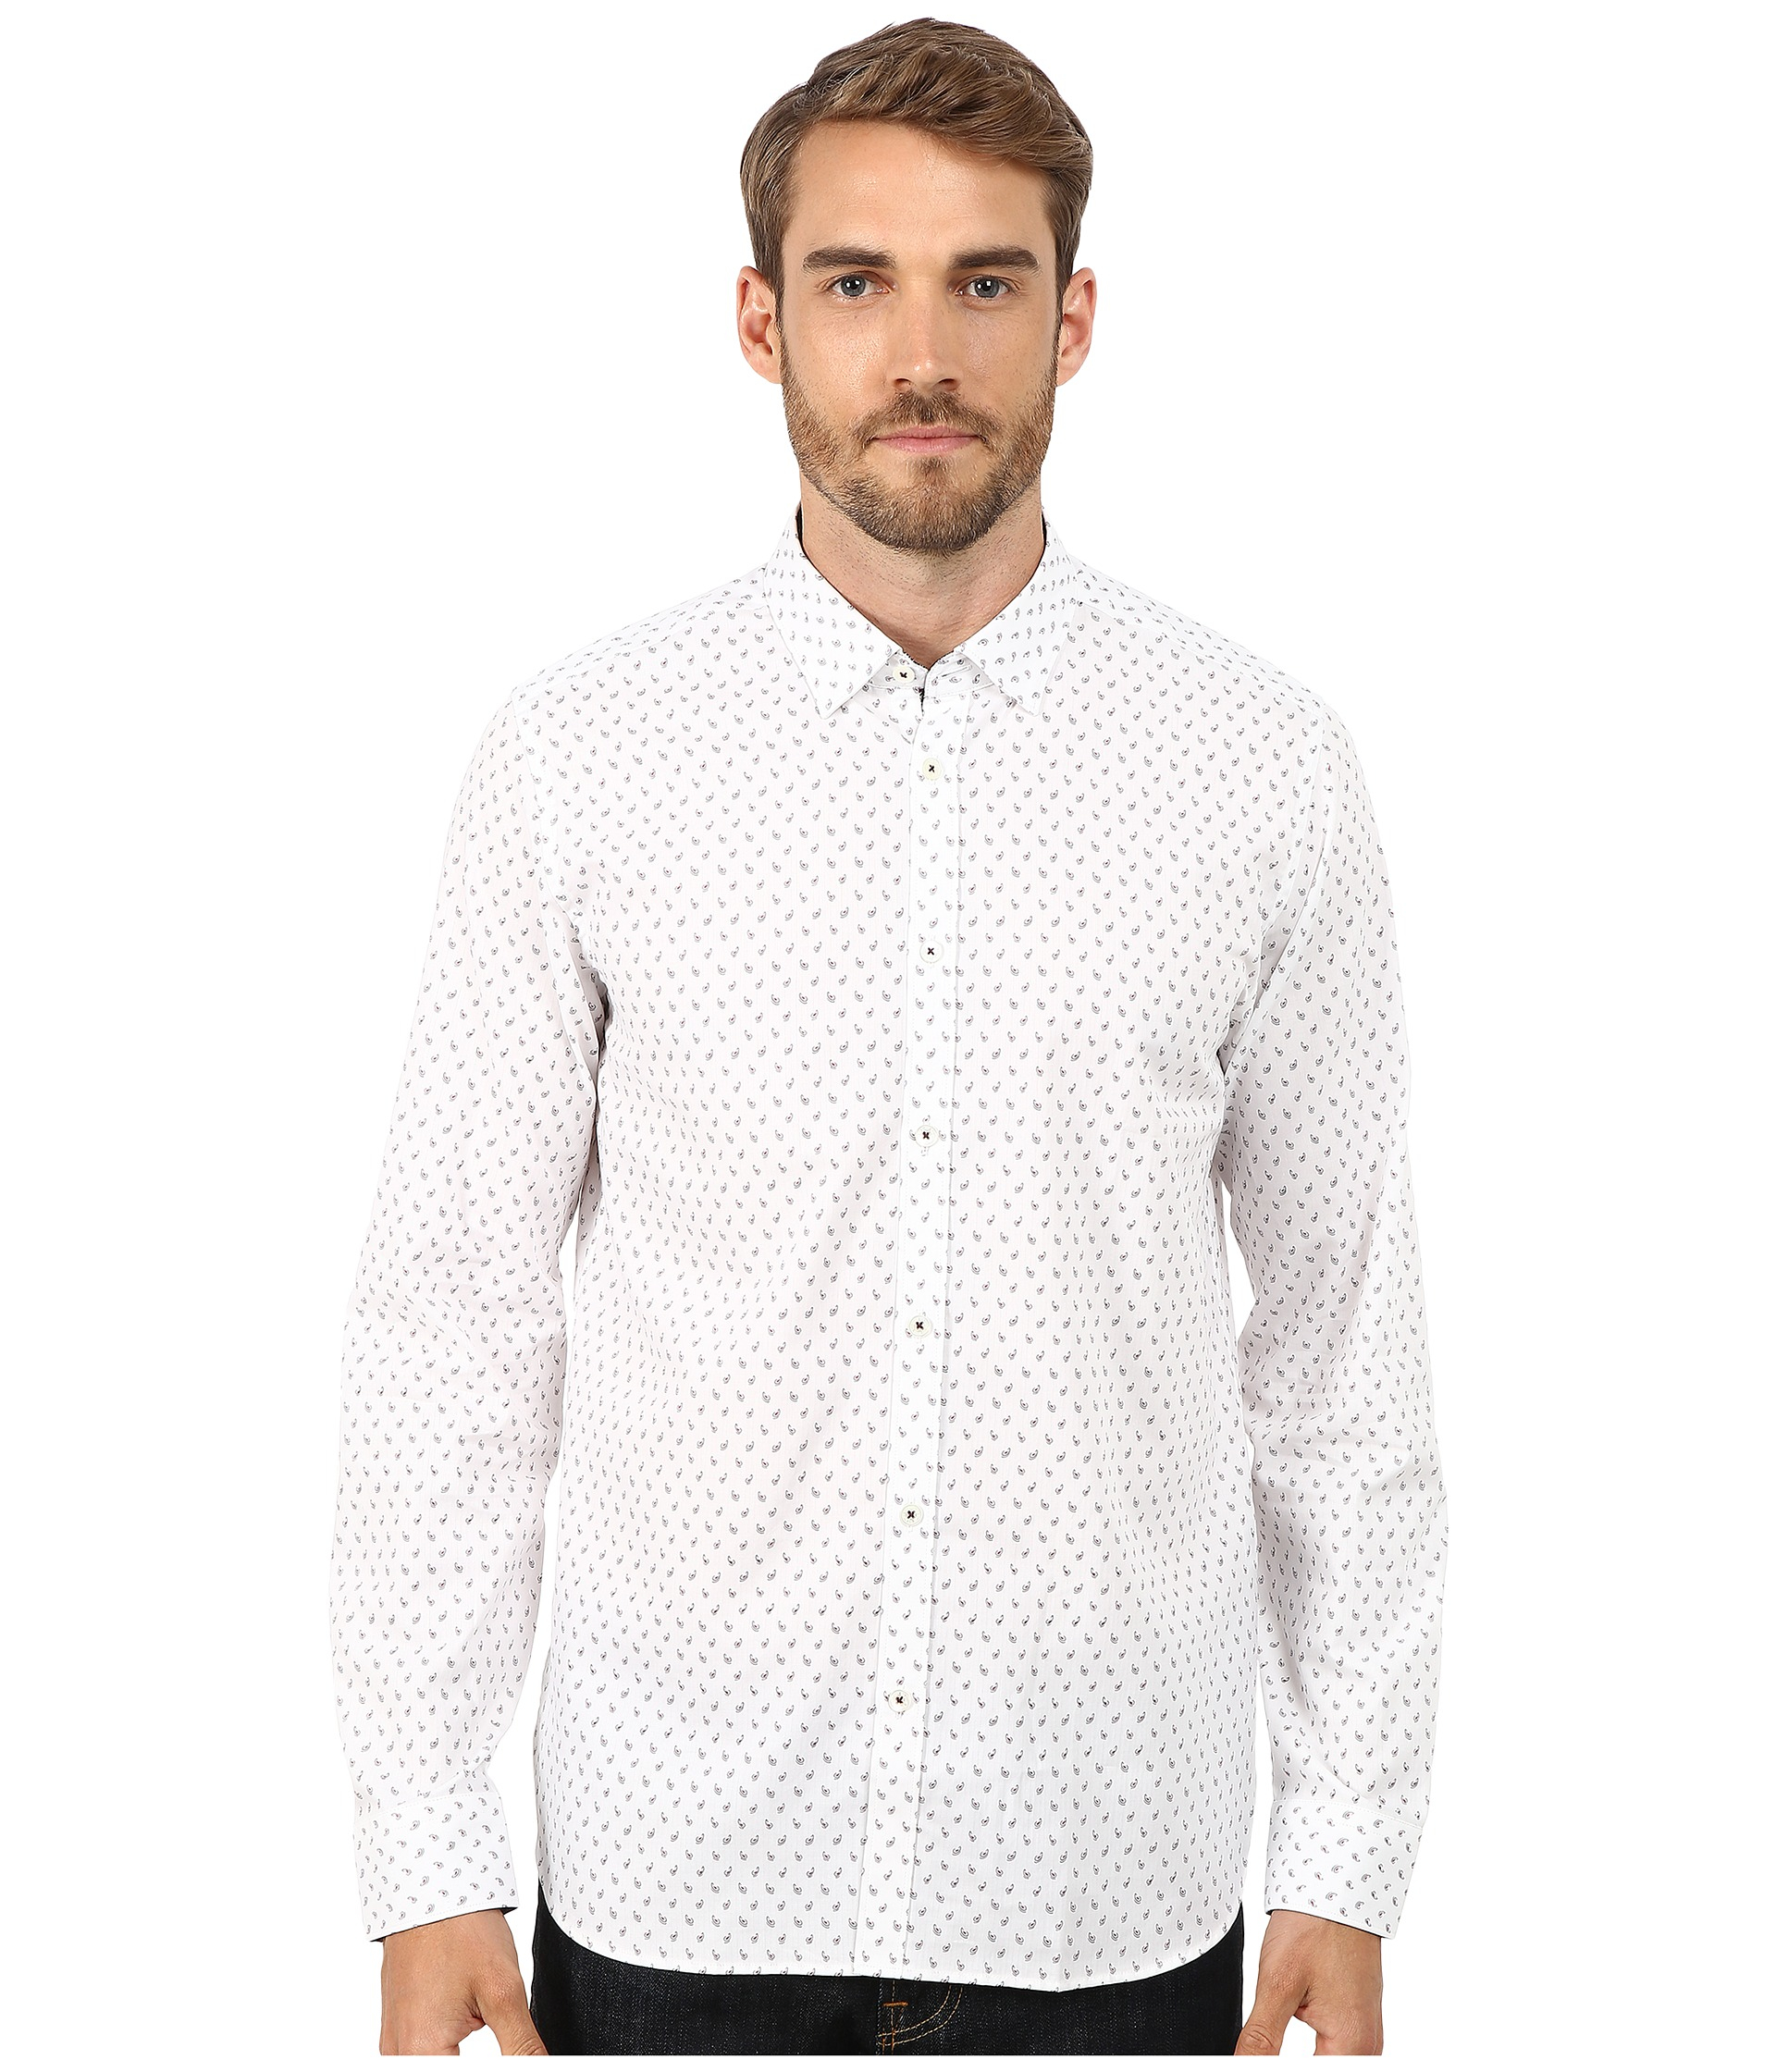 e81b4650a055 Lyst - Ted Baker Autumnn Long Sleeve Paisley Print Shirt in White ...